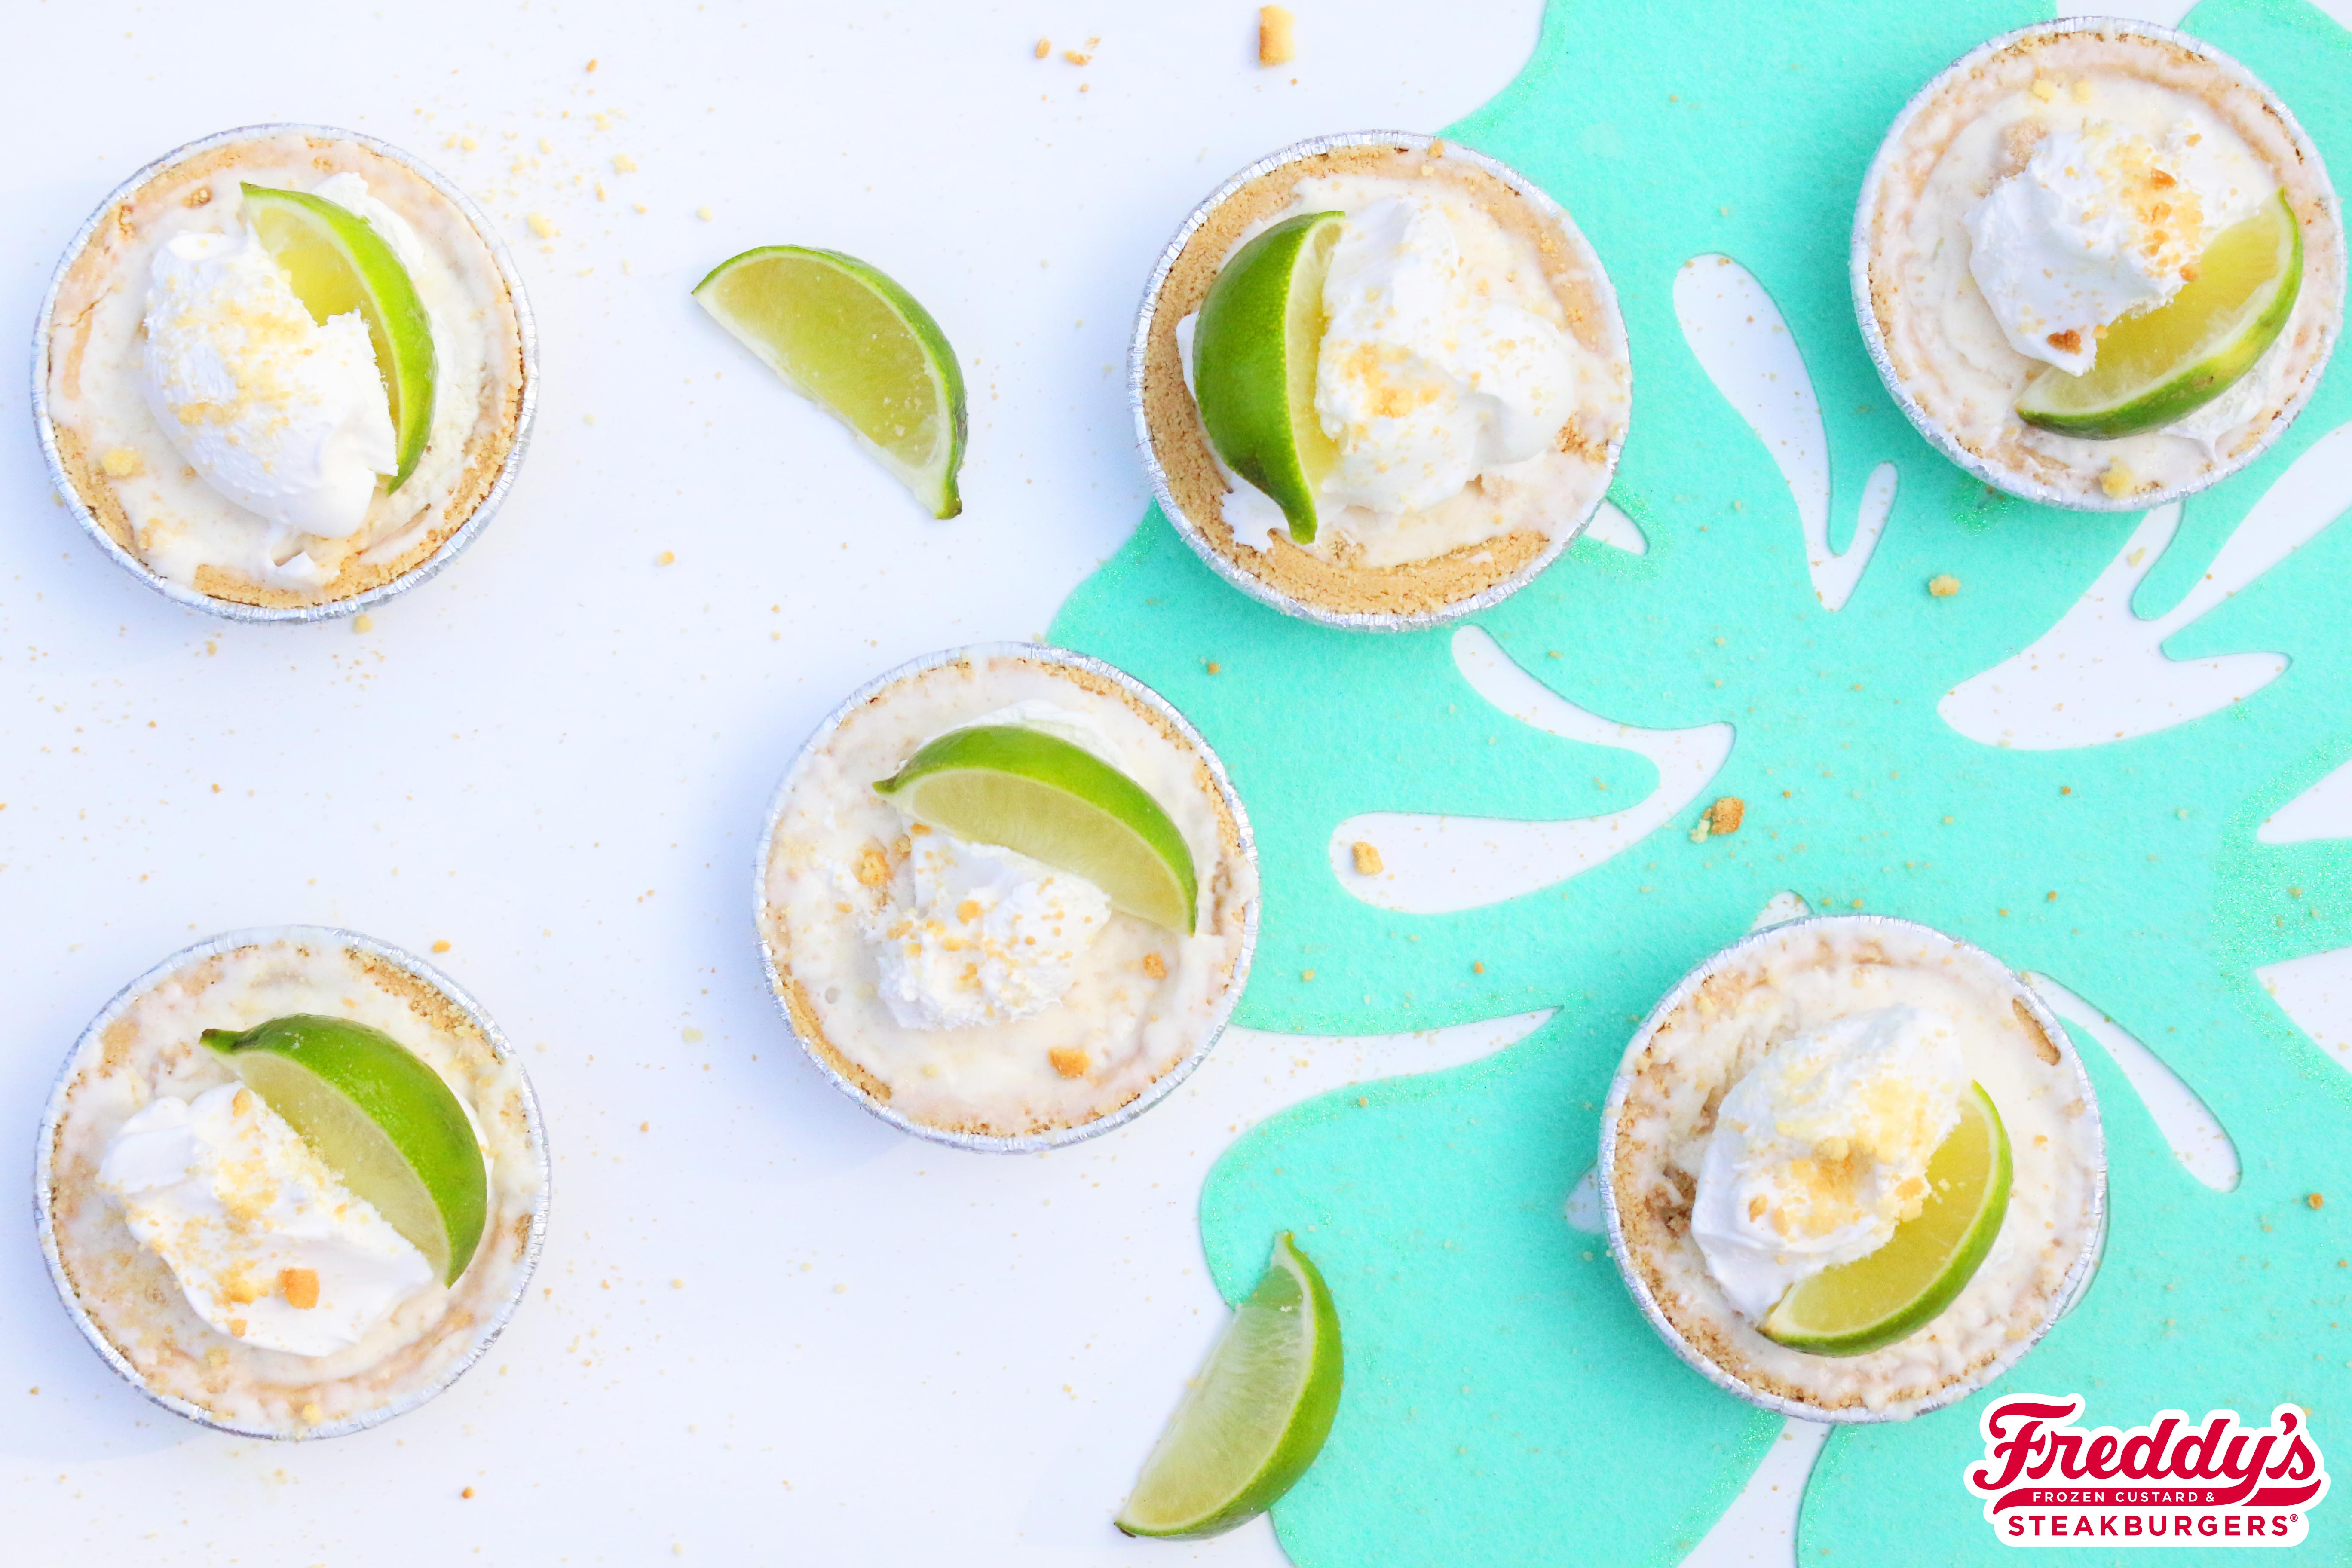 Mini pies filled with Freddy's Key Lime Custard